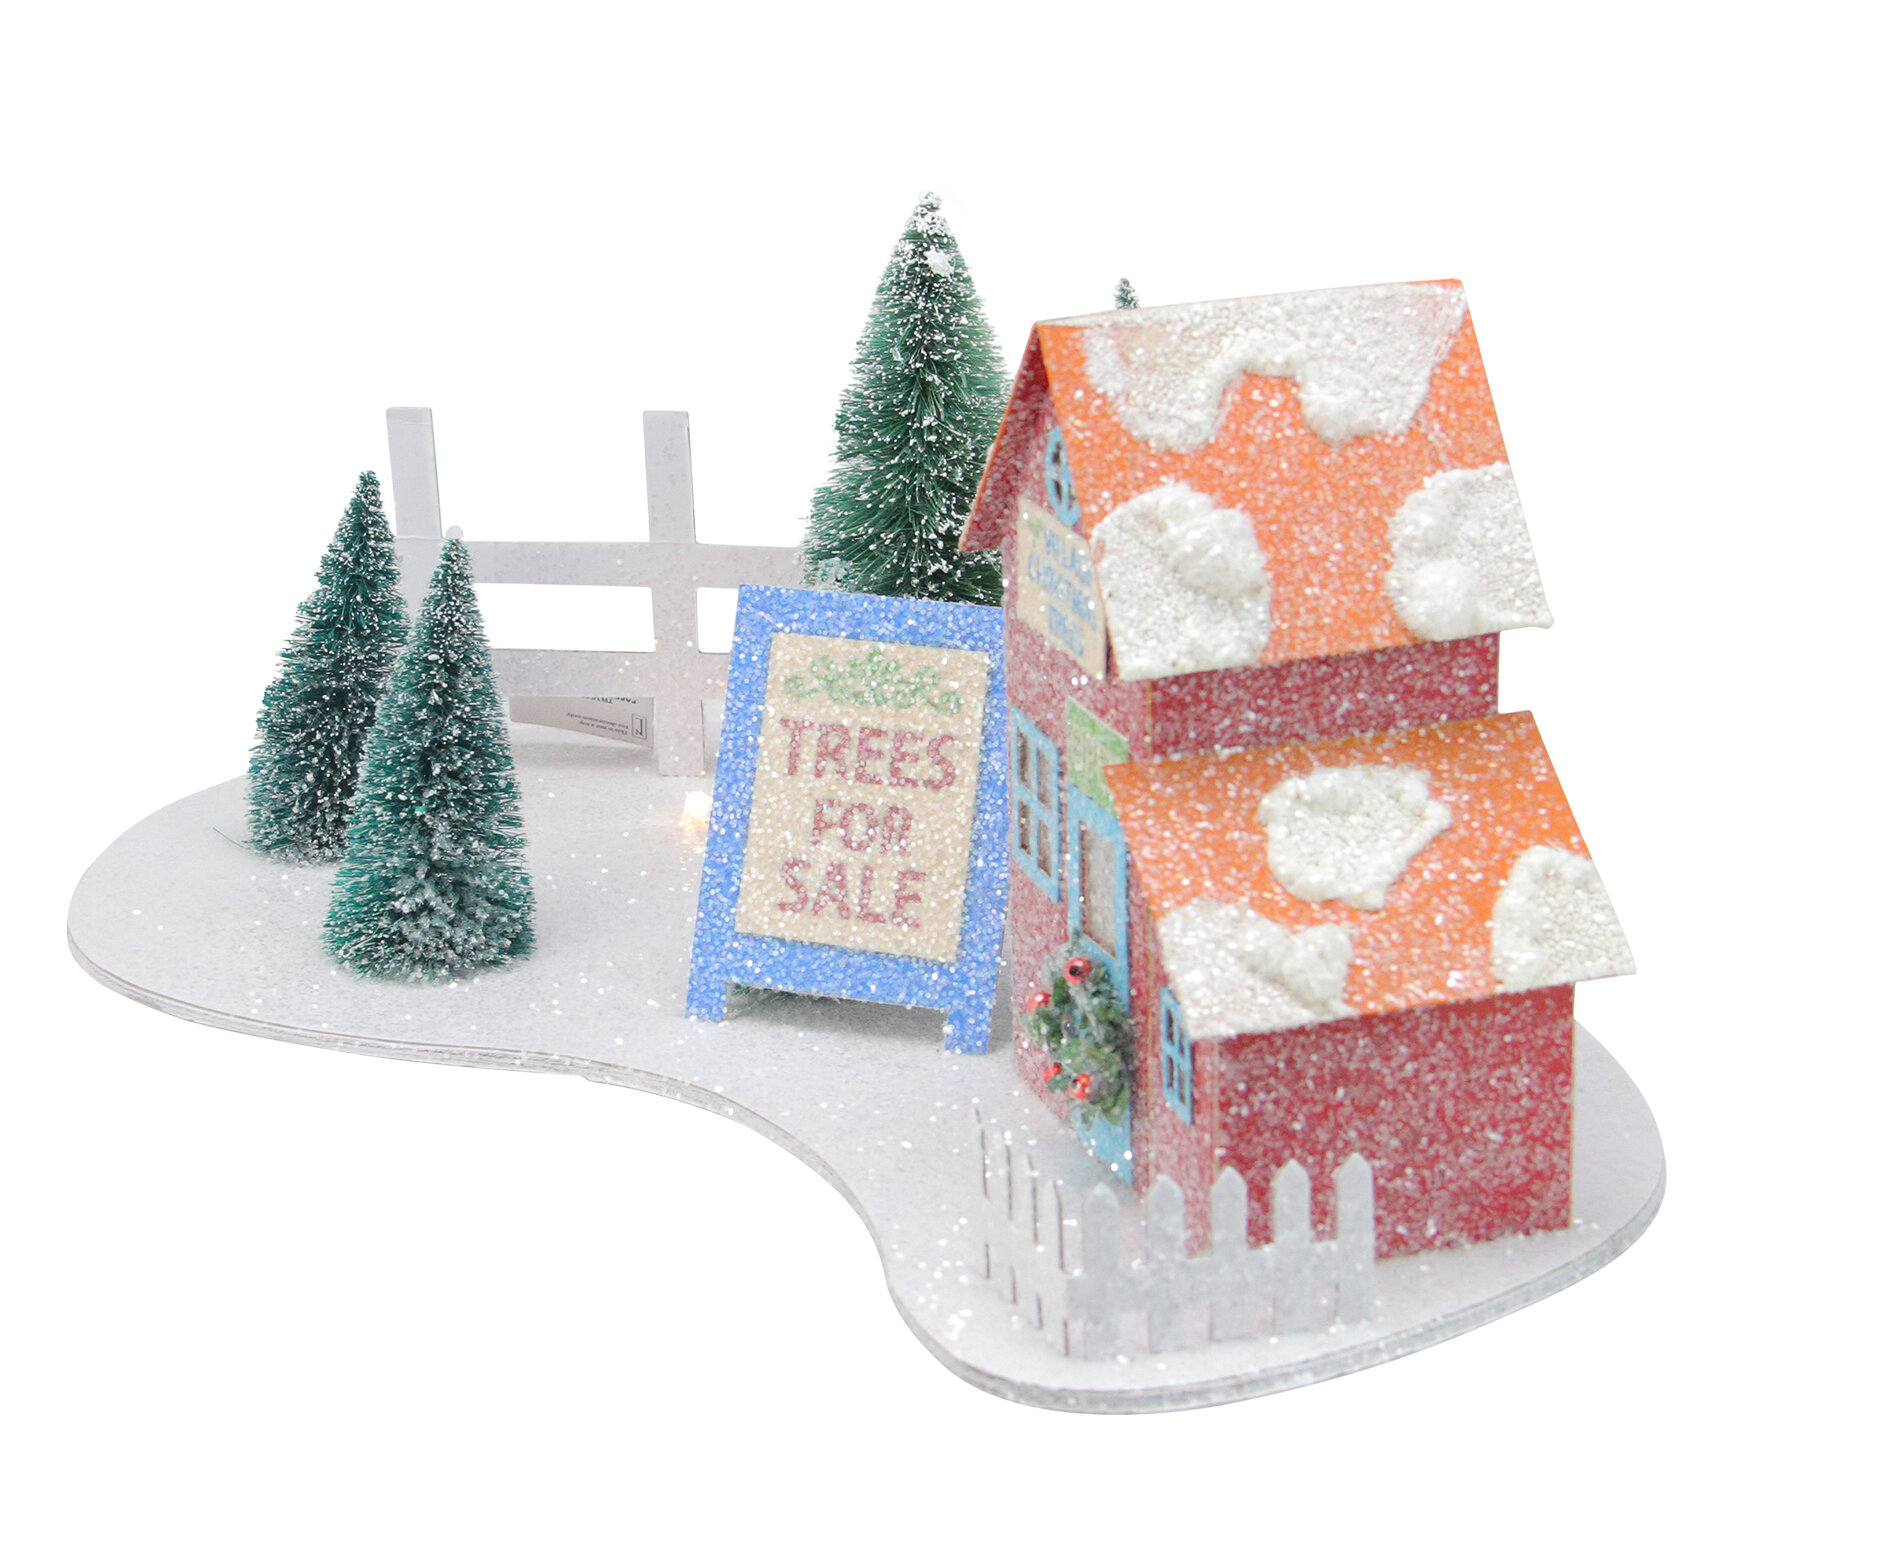 Prelit Glittered Christmas Tree Shop With Pine Trees Decorative Accent